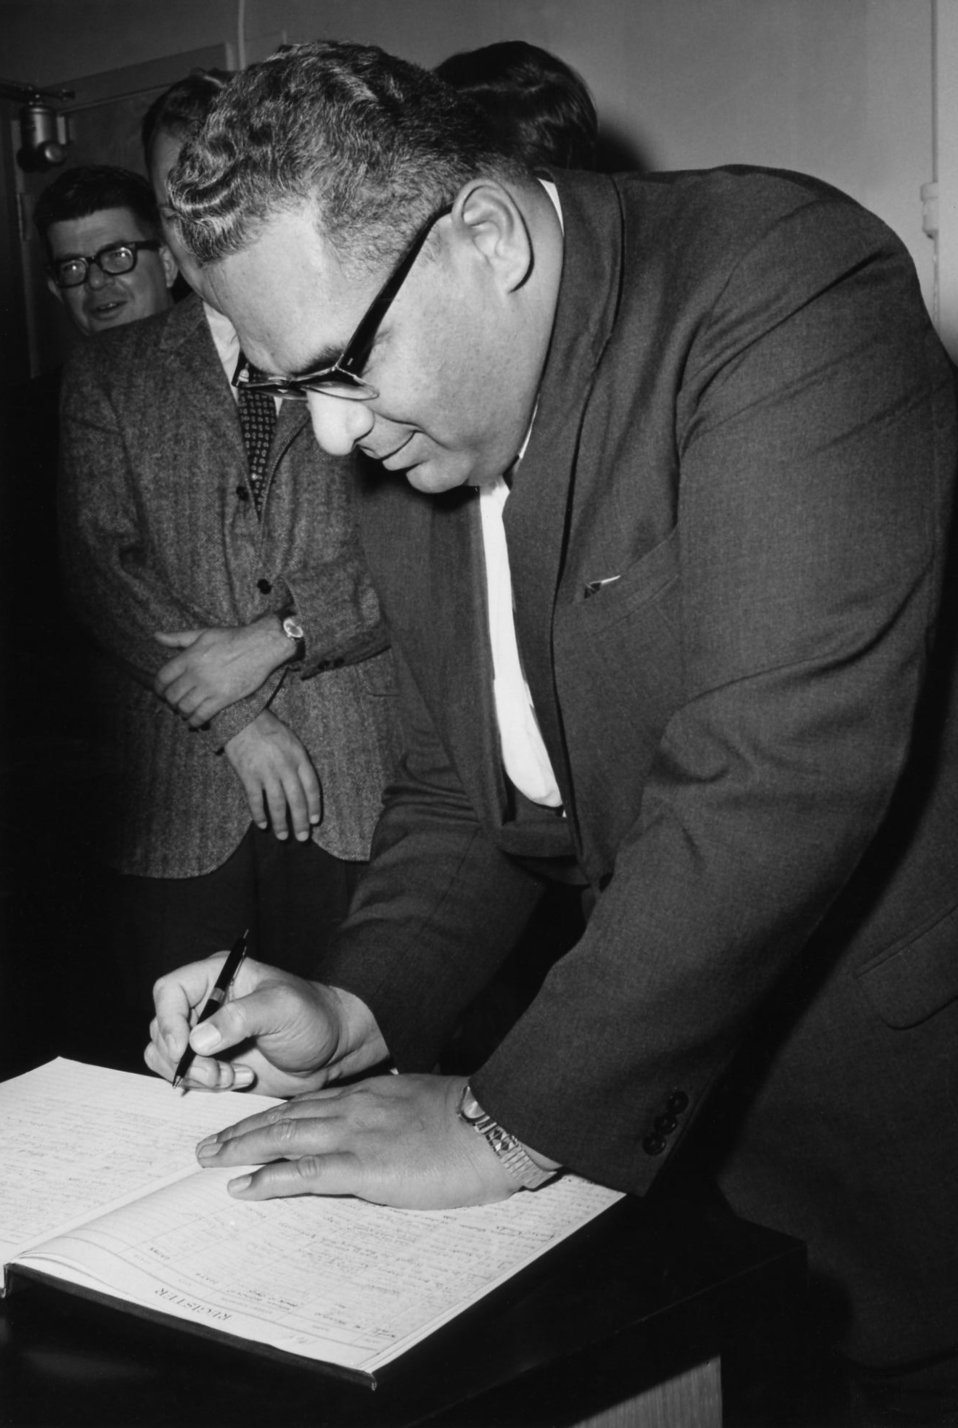 This photograph shows the Prince of Tonga, Prince Tu'ipelehake, as he was signing the guest registry during his 1967 visit to the Centers fo